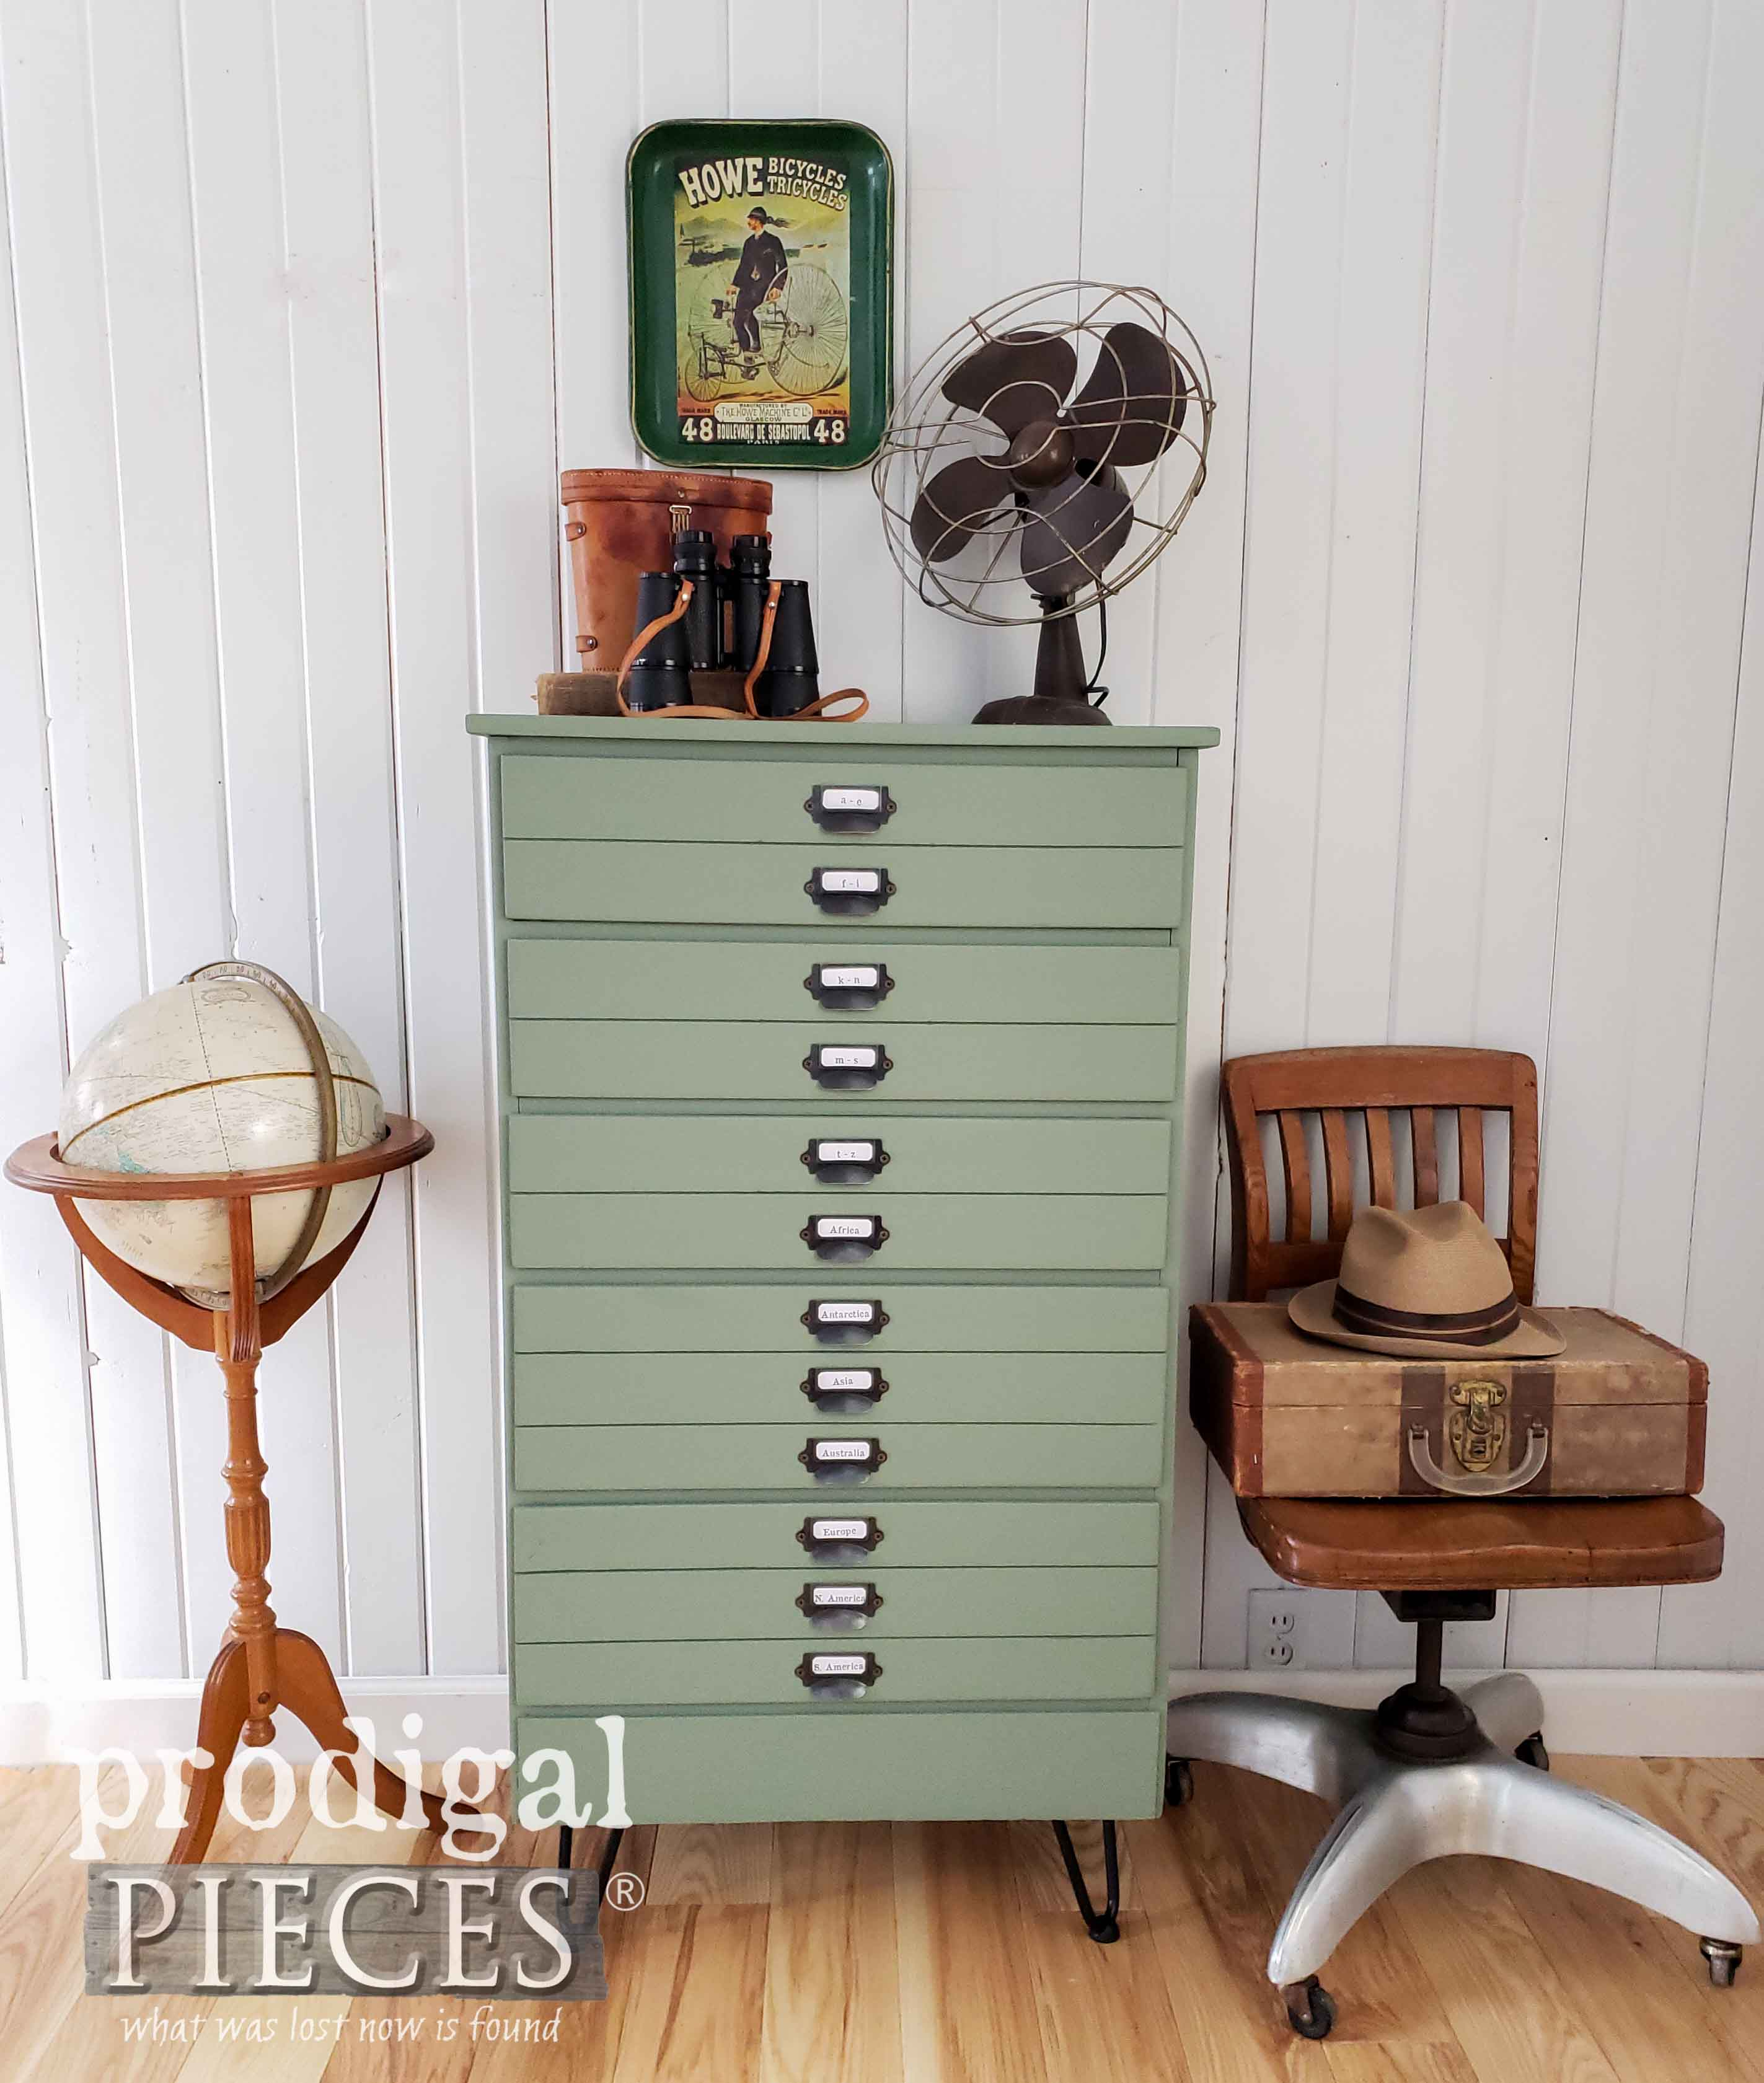 Vintage Style Map Cabinet from an Upcycled Chest of Drawers by Larissa of Prodigal Pieces | Video tutorial at prodigalpieces.com #prodigalpieces #diy #handmade #furniture #shopping #home #farmhouse #homedecor #homedecorideas